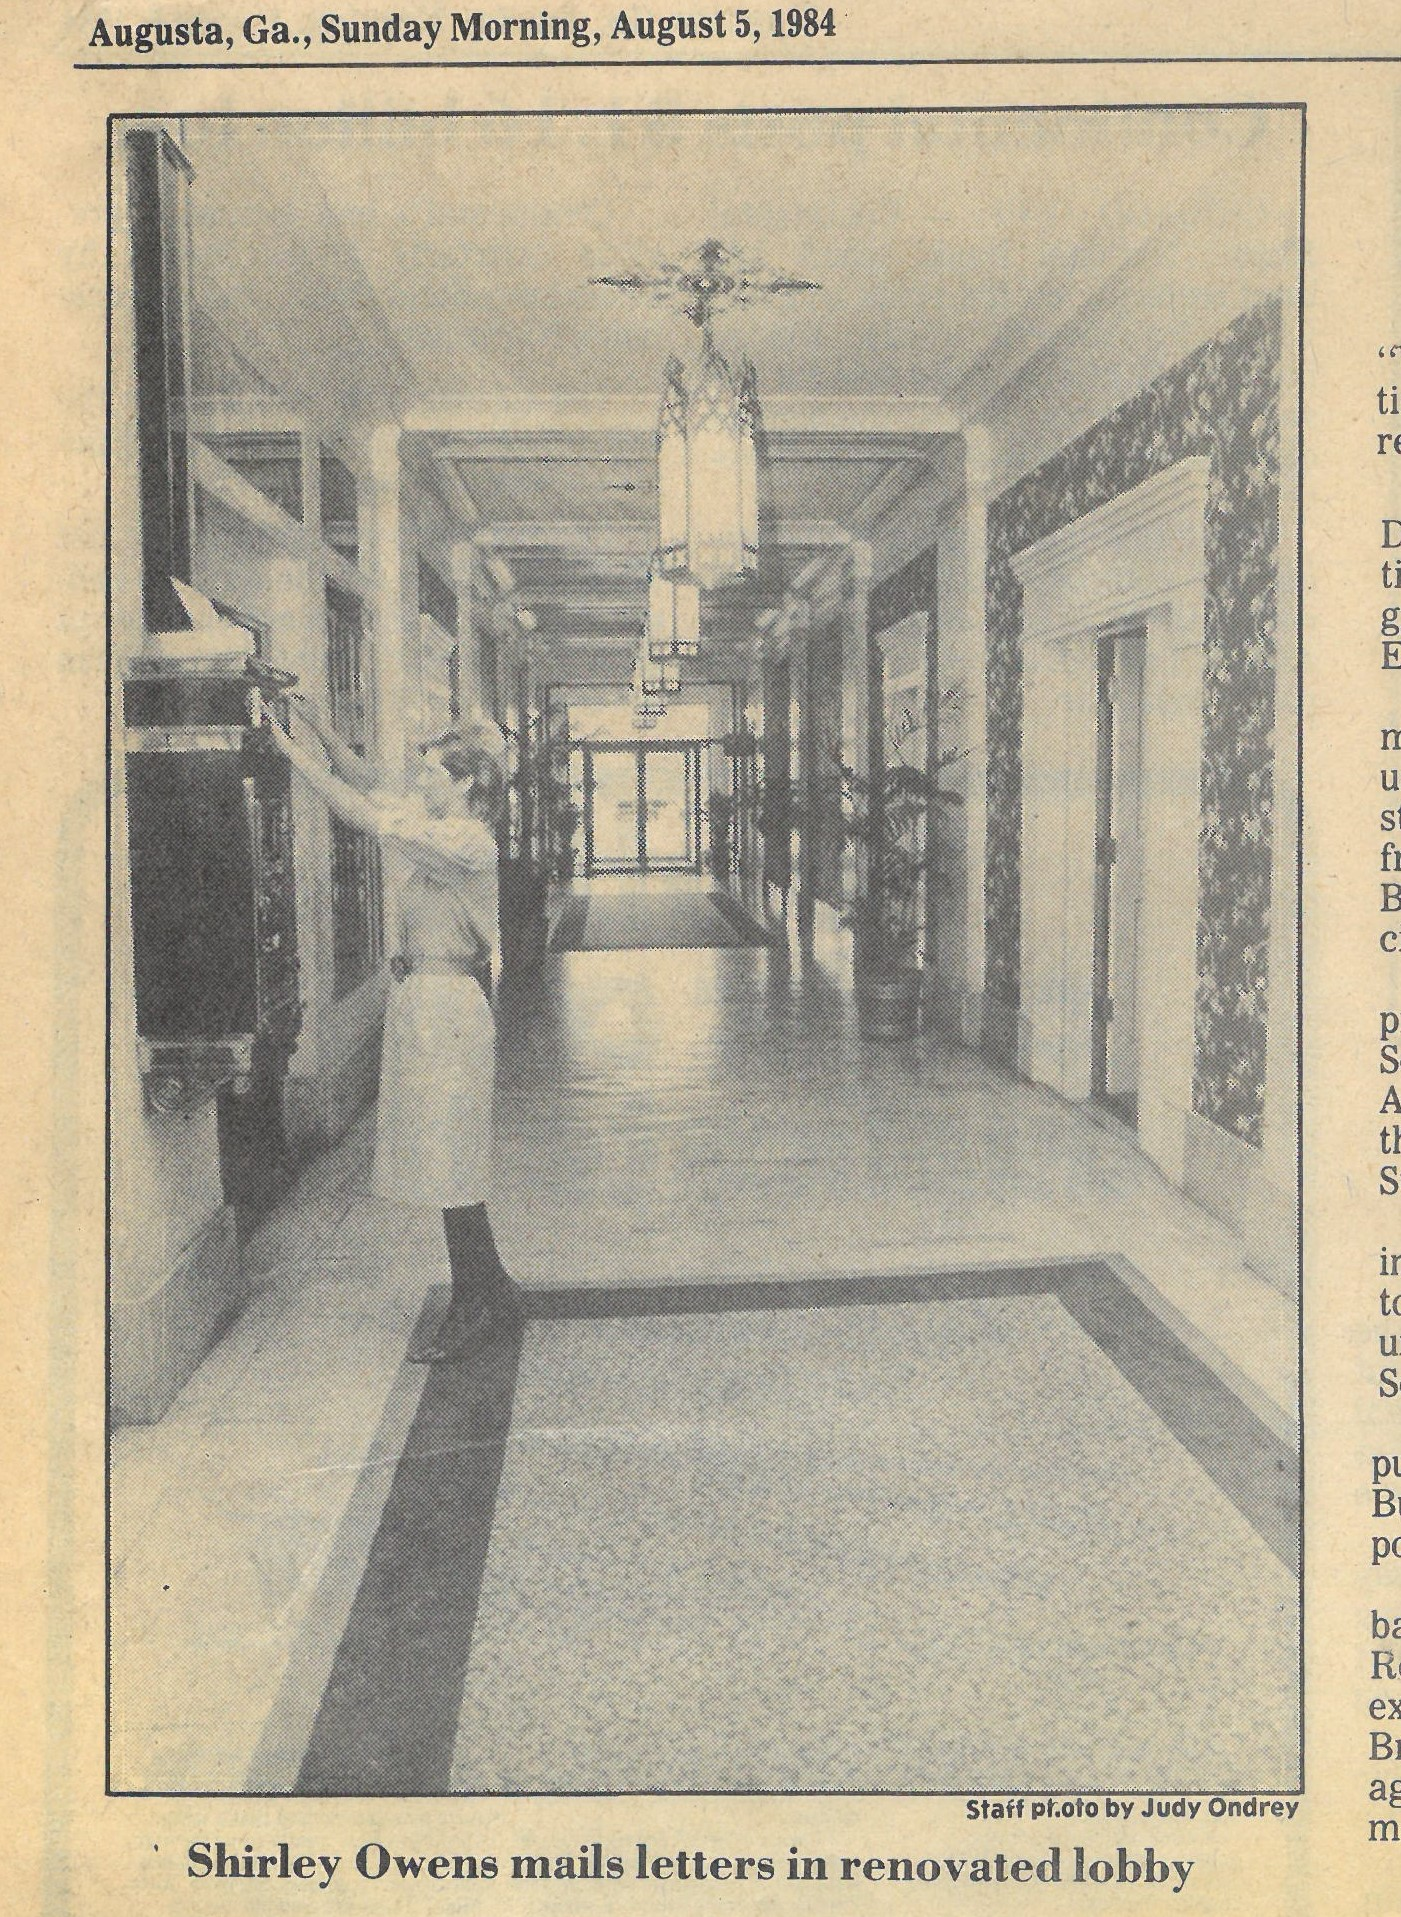 View of Lobby c.1984